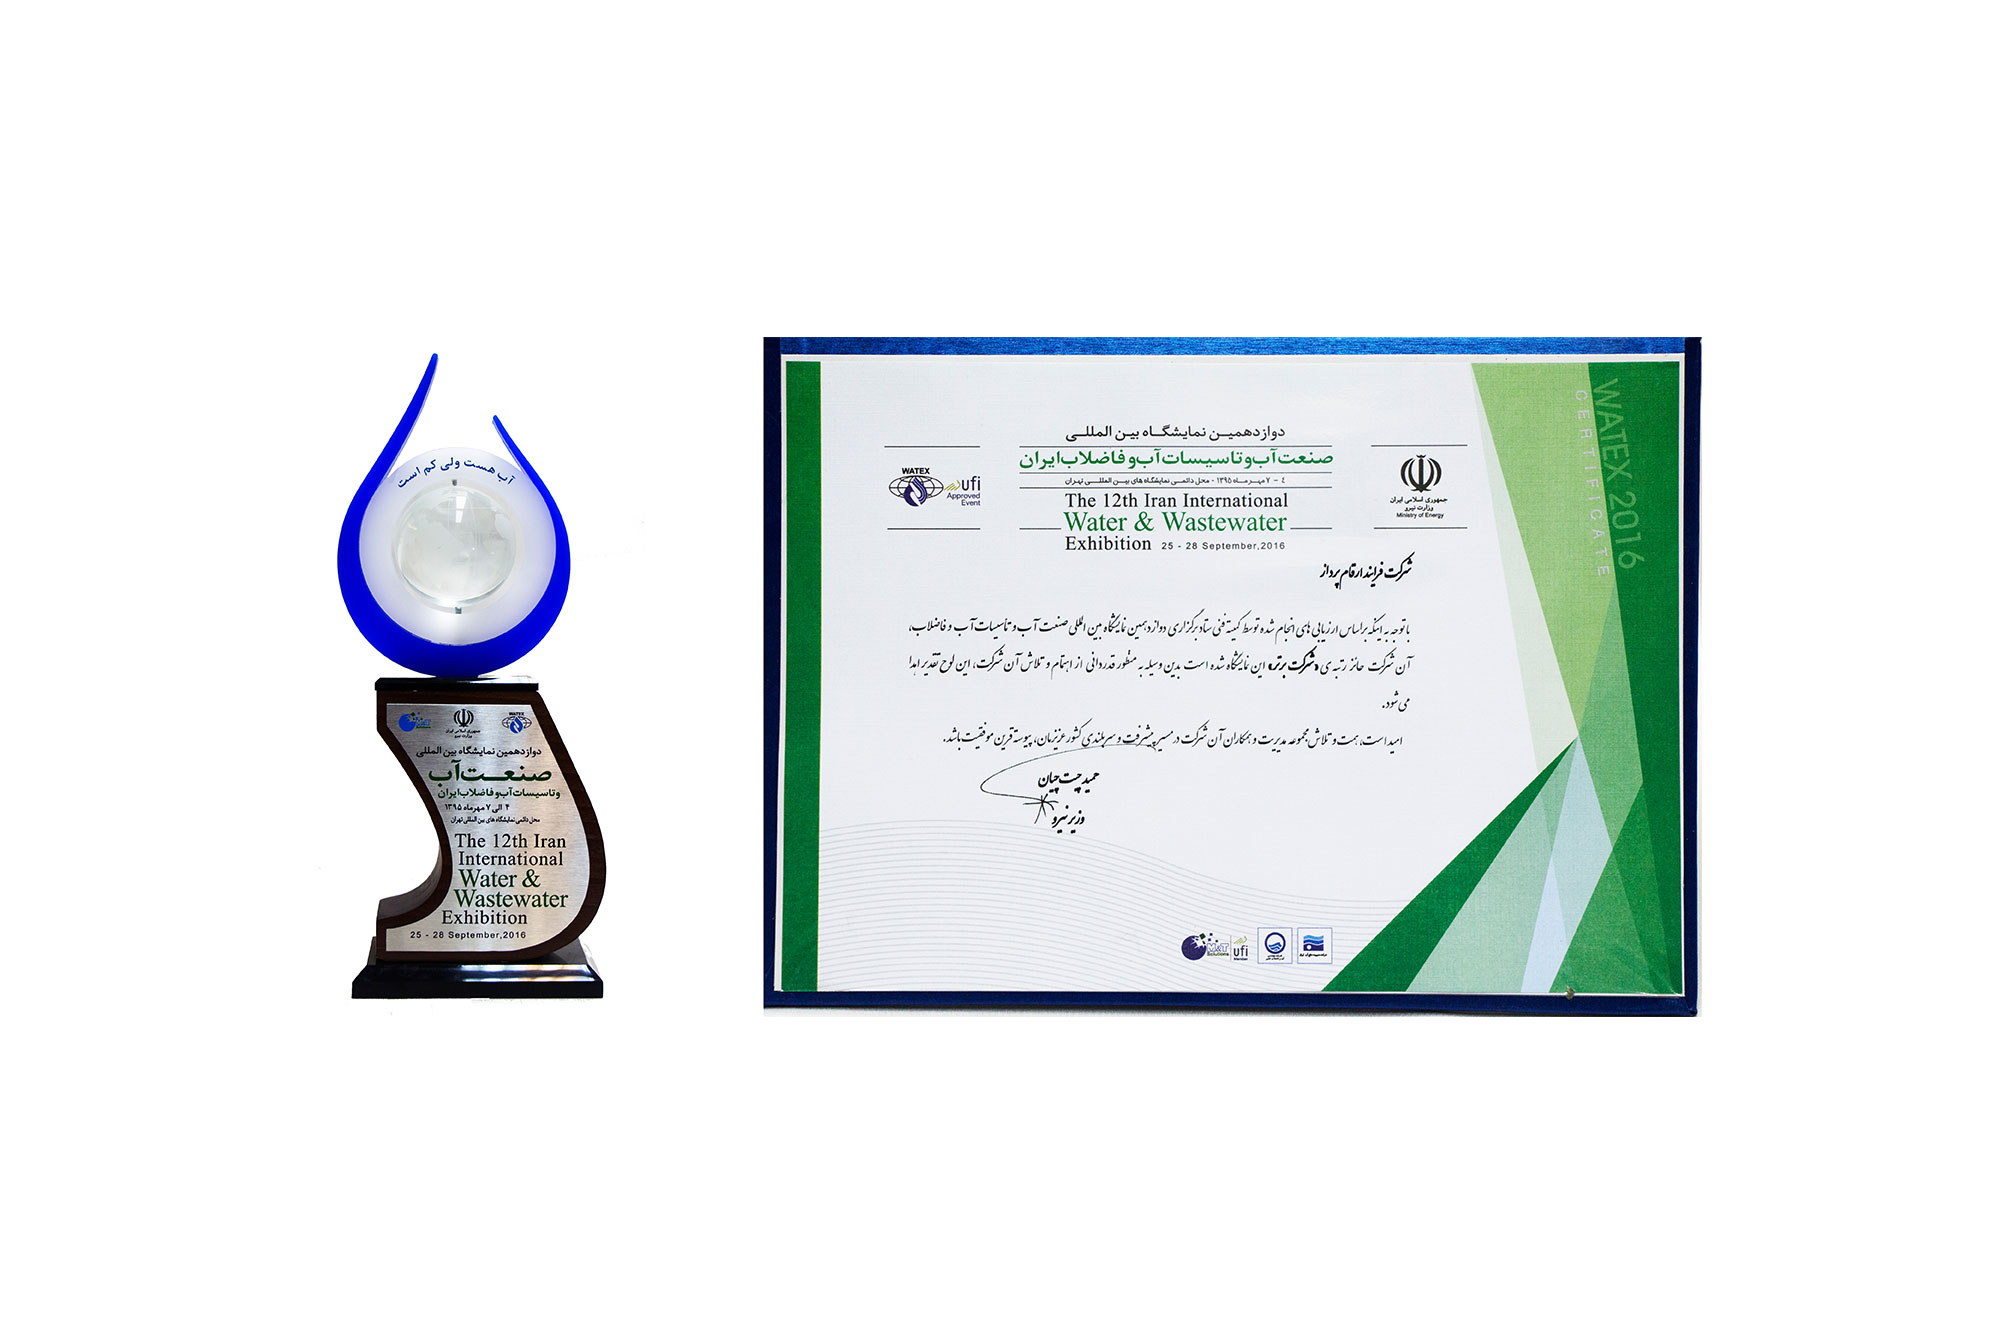 12th International Water and Wastewater Company of Iran